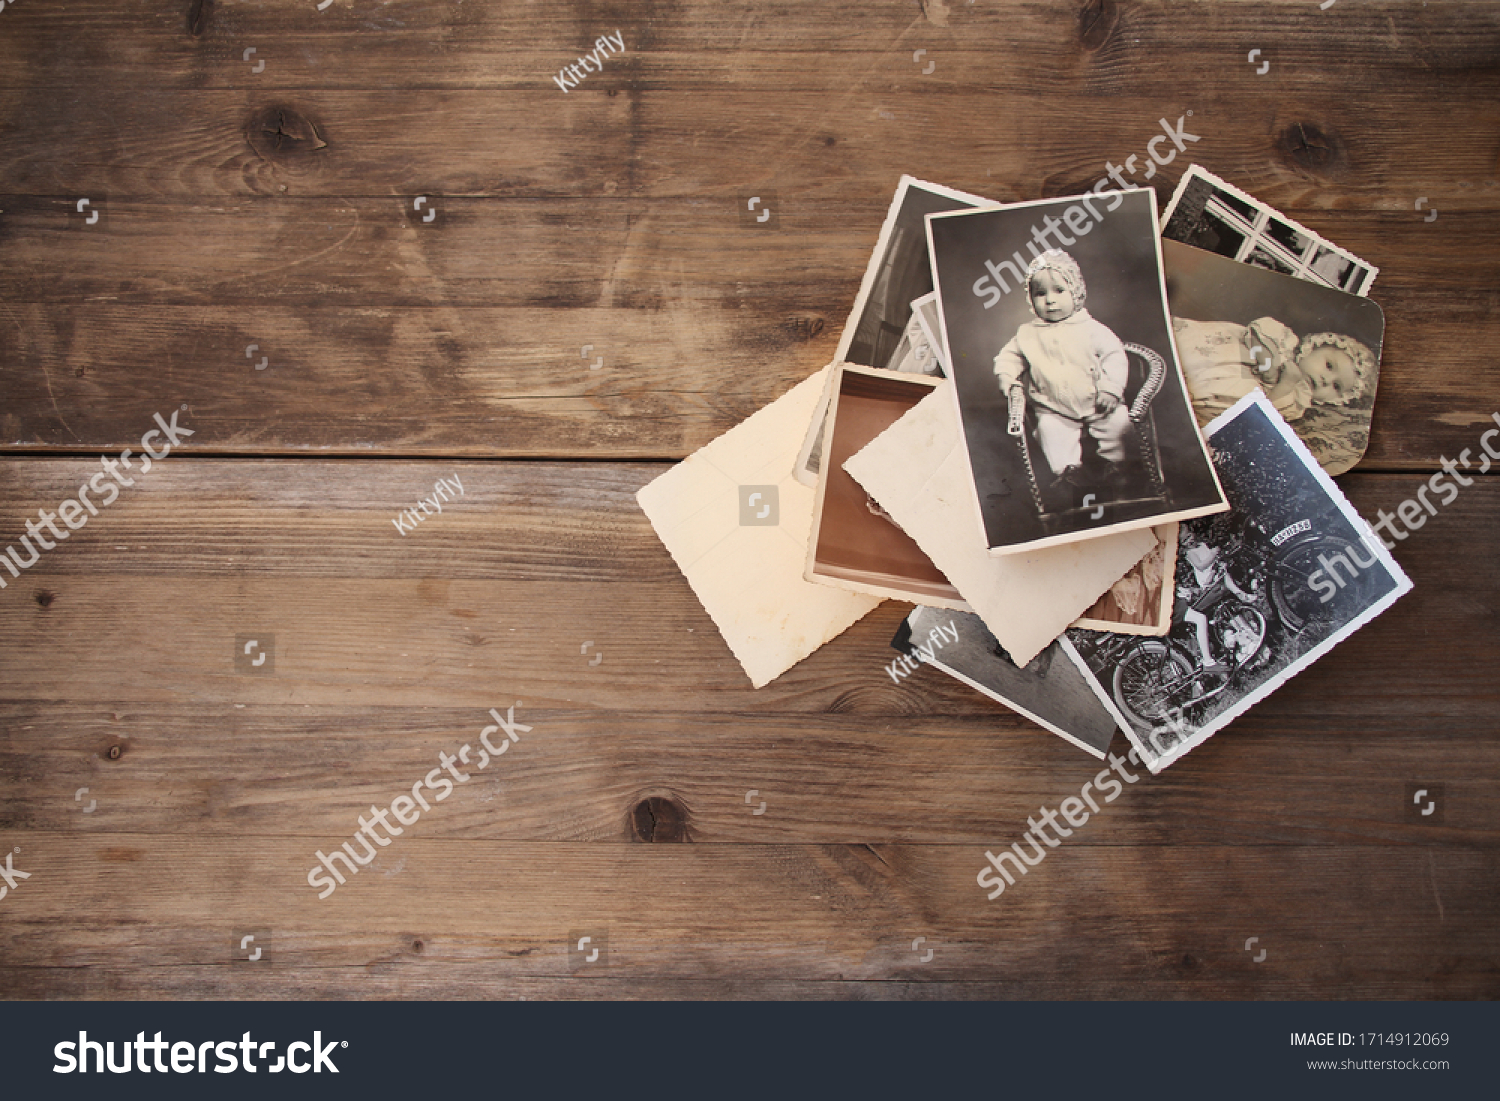 old vintage monochrome photographs, pictures taken in 1968, in sepia color are scattered on a wooden table, concept of genealogy, the memory of ancestors, family ties, memories of childhood #1714912069